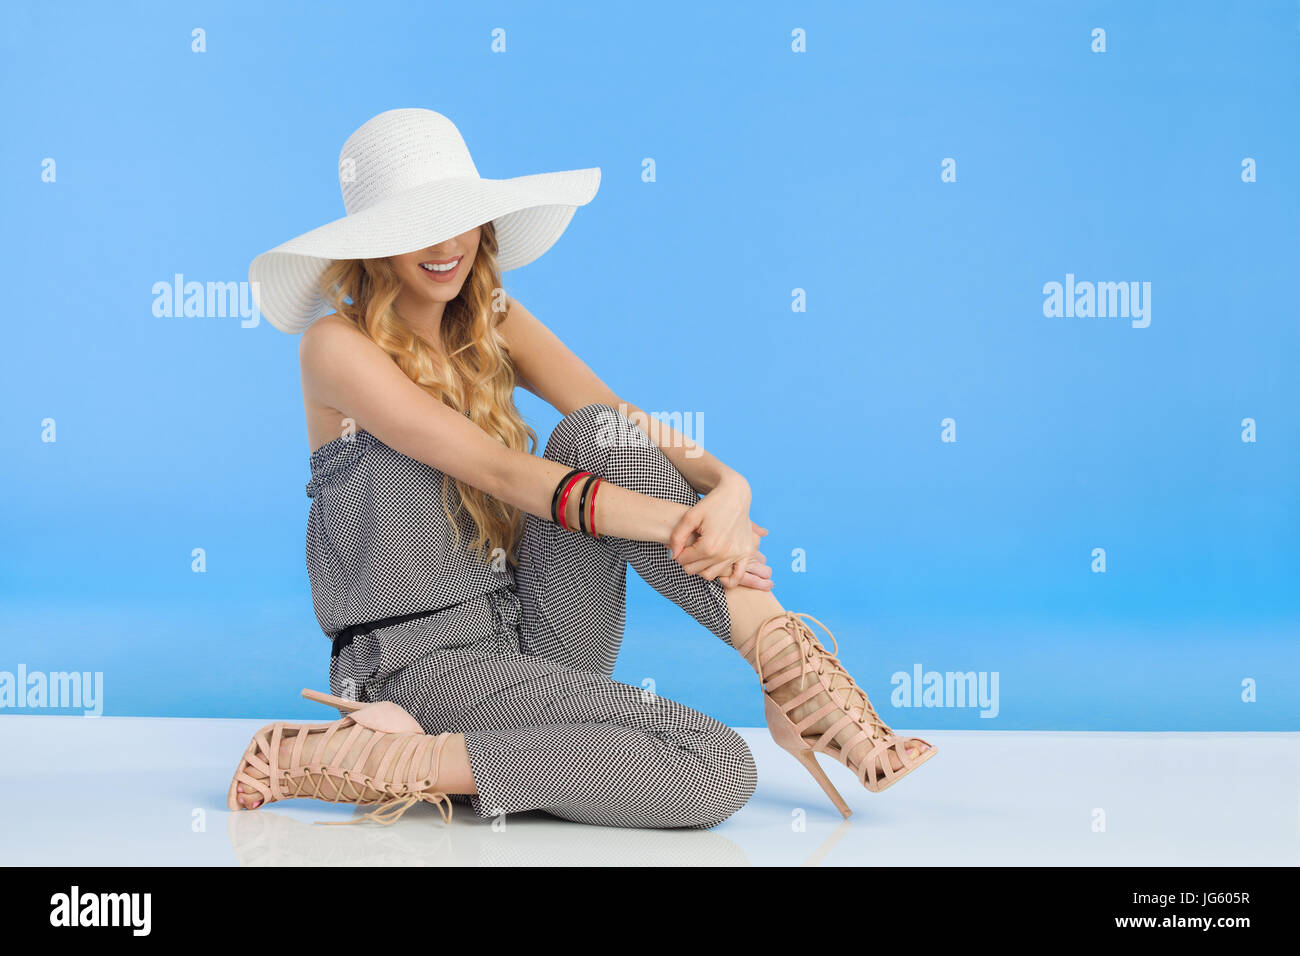 Young woman in summer jumpsuit, high heels and white sun hat is sitting on floor and smiling. Full length studio - Stock Image